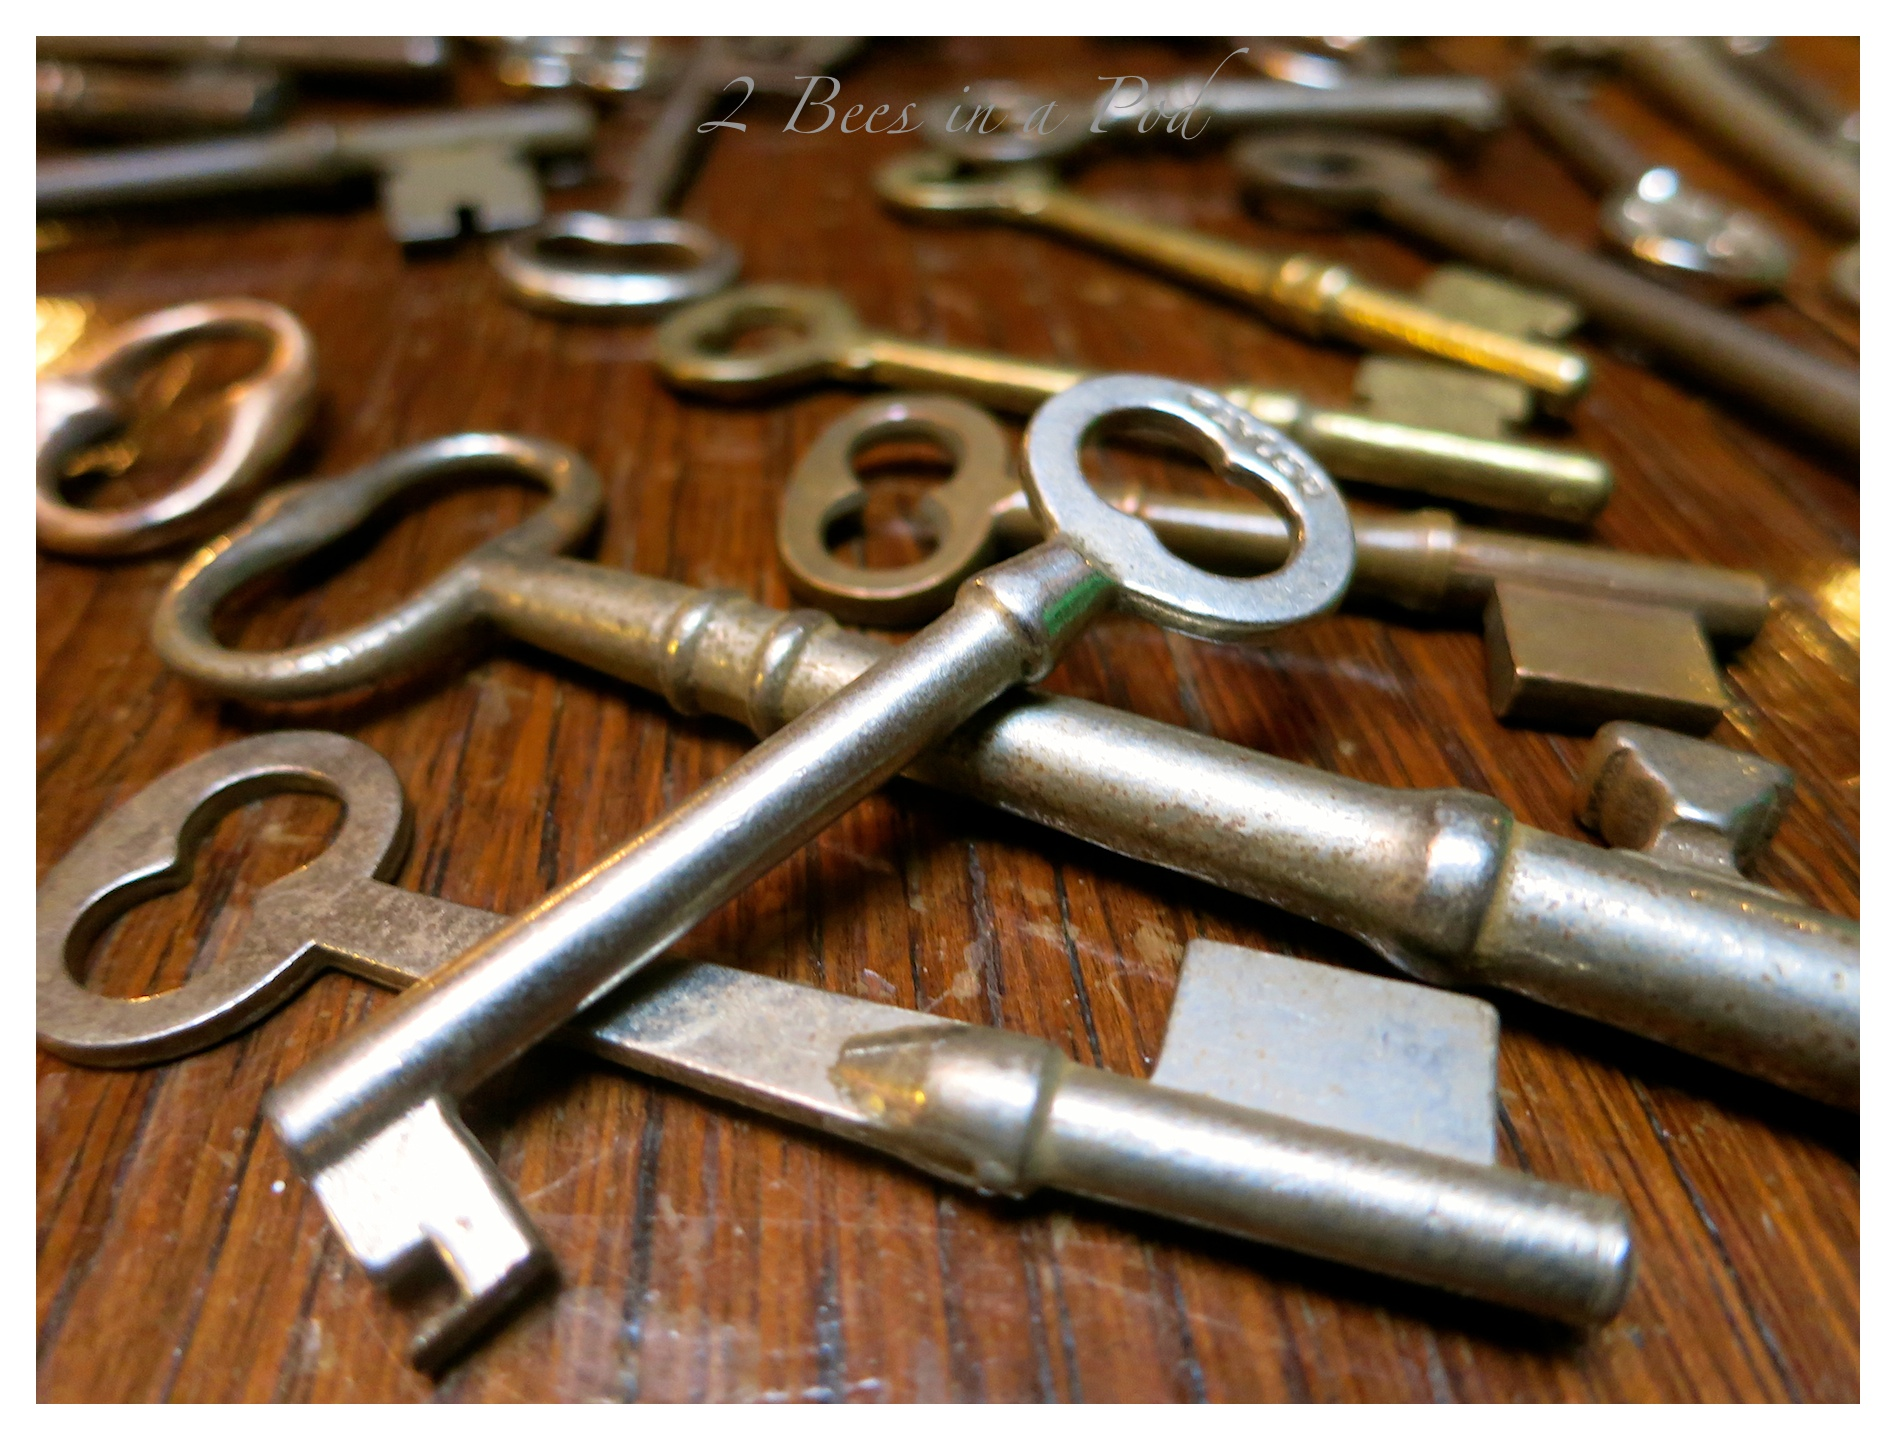 Skeleton keys from Black Bear Creek Antiques in Clayton, GA